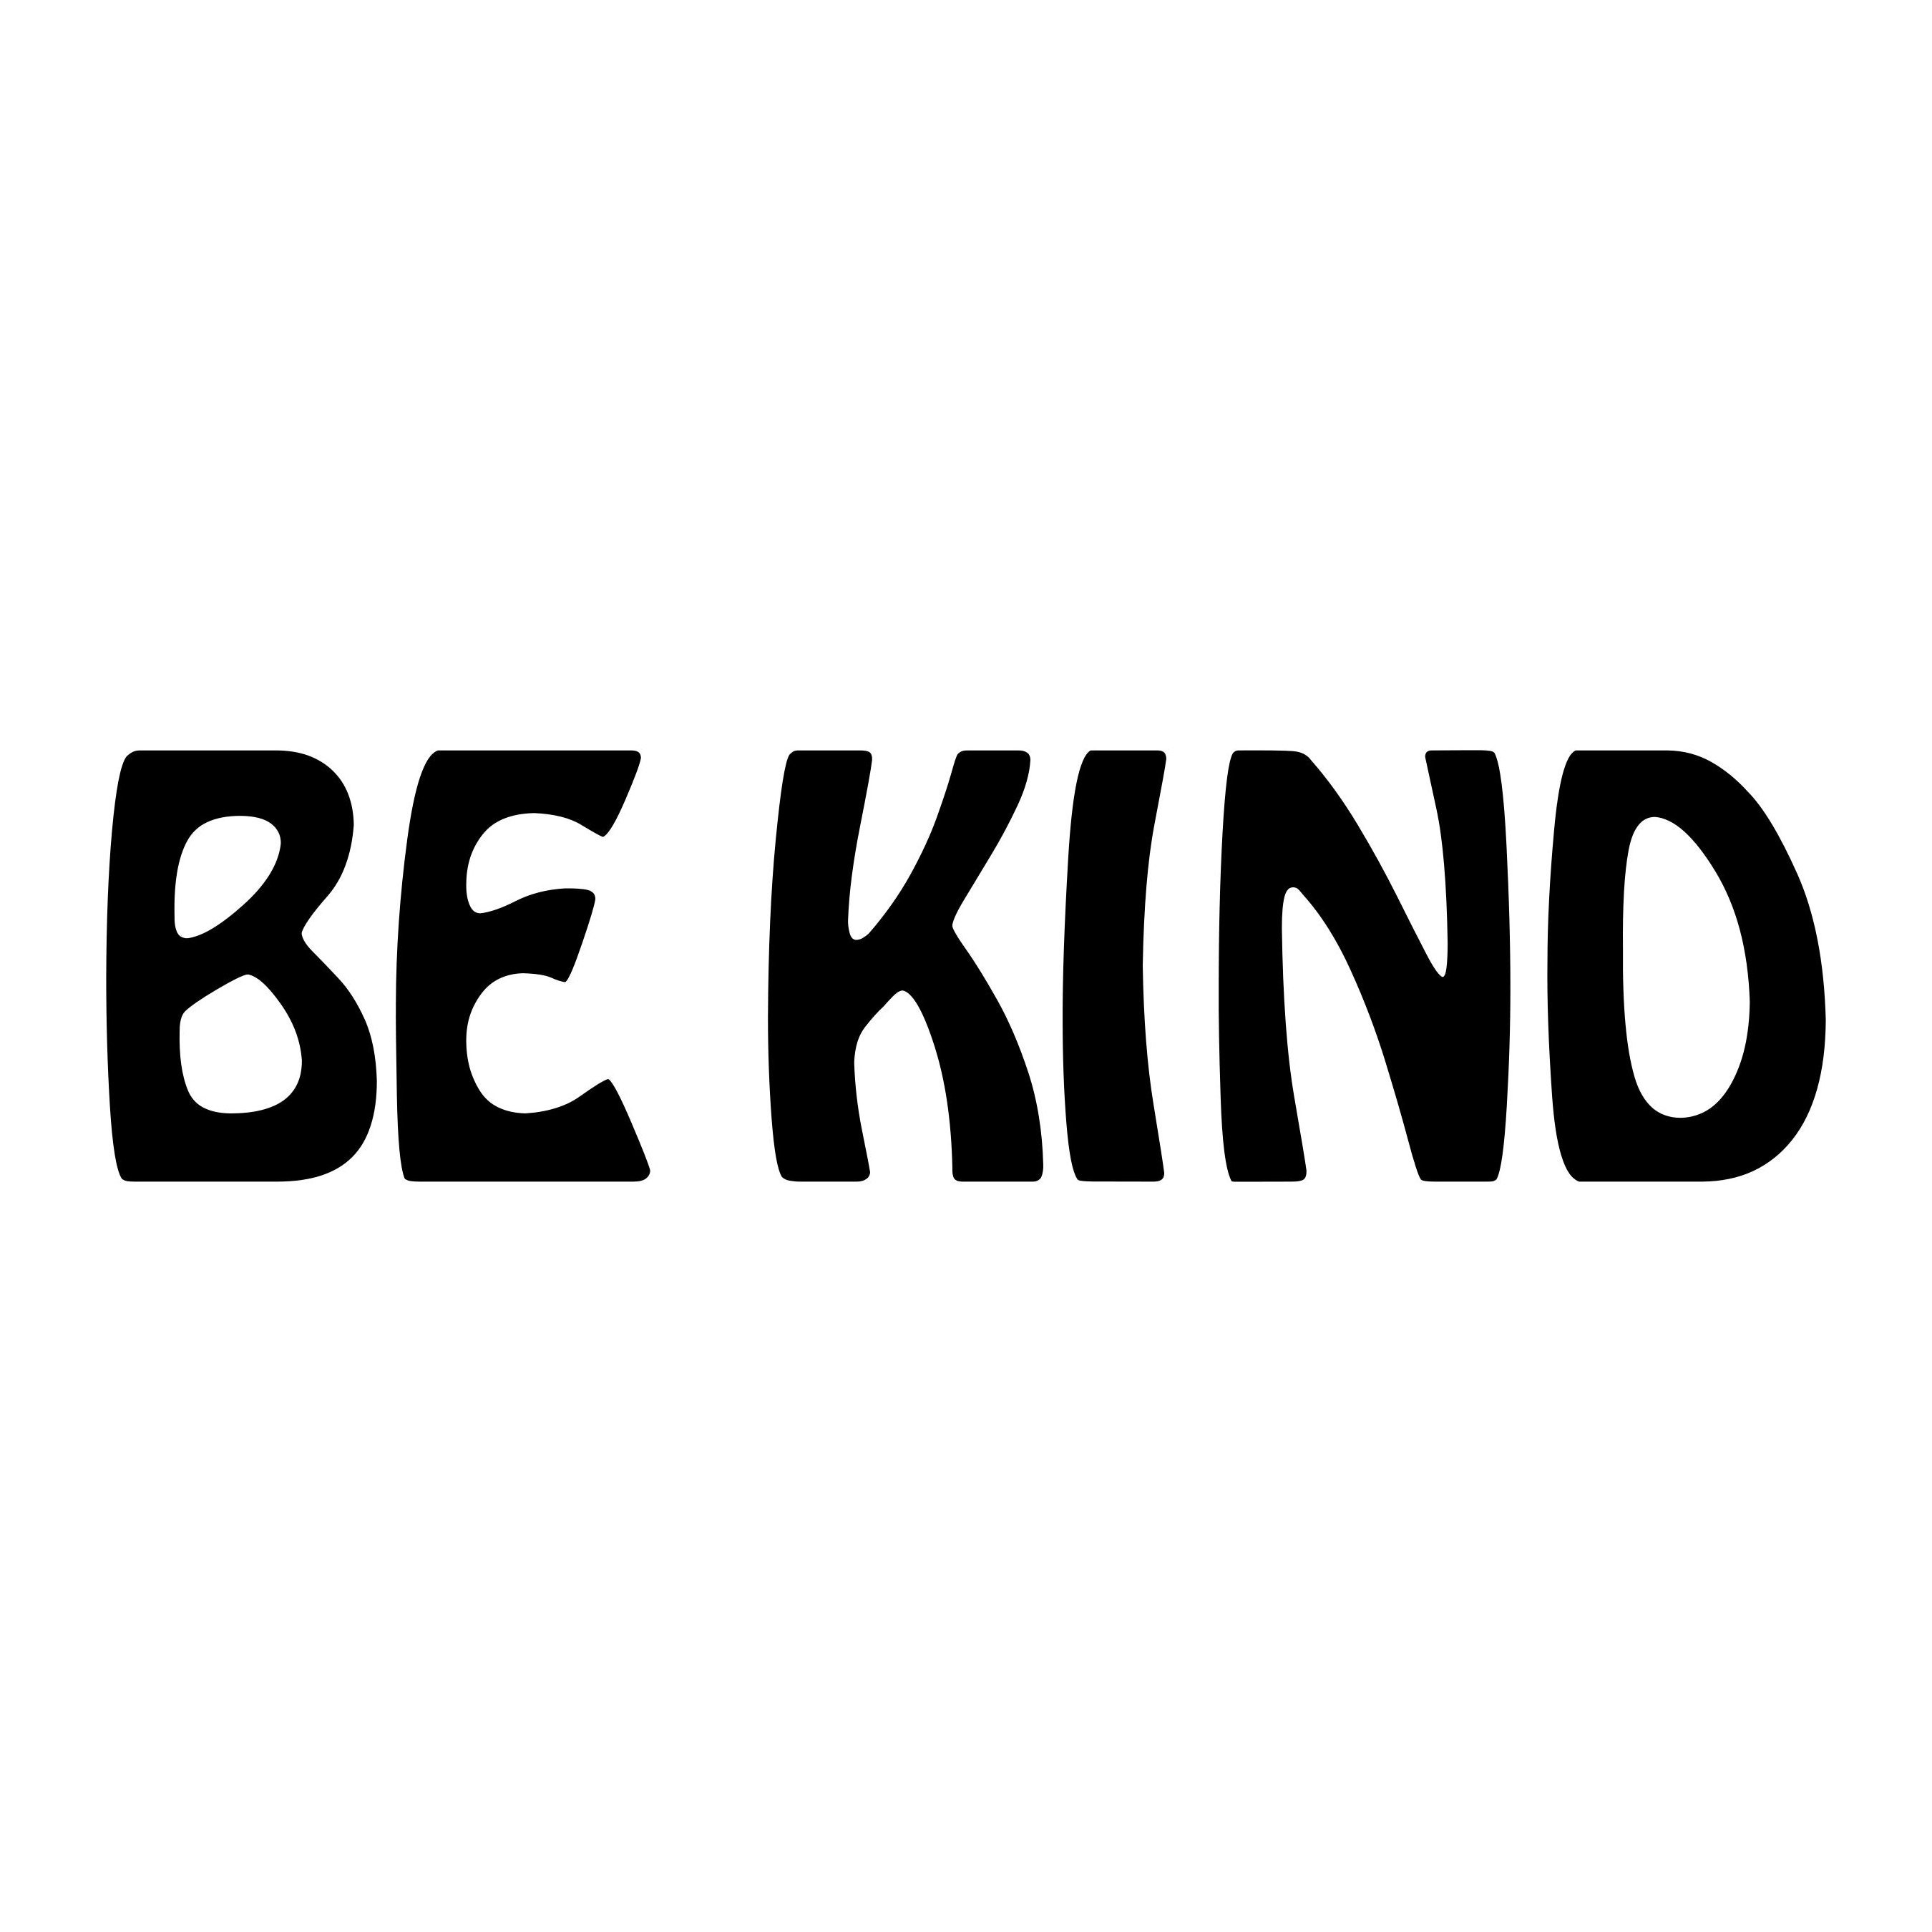 Be kind vinyl decal sticker peace love coexist no war free etsy